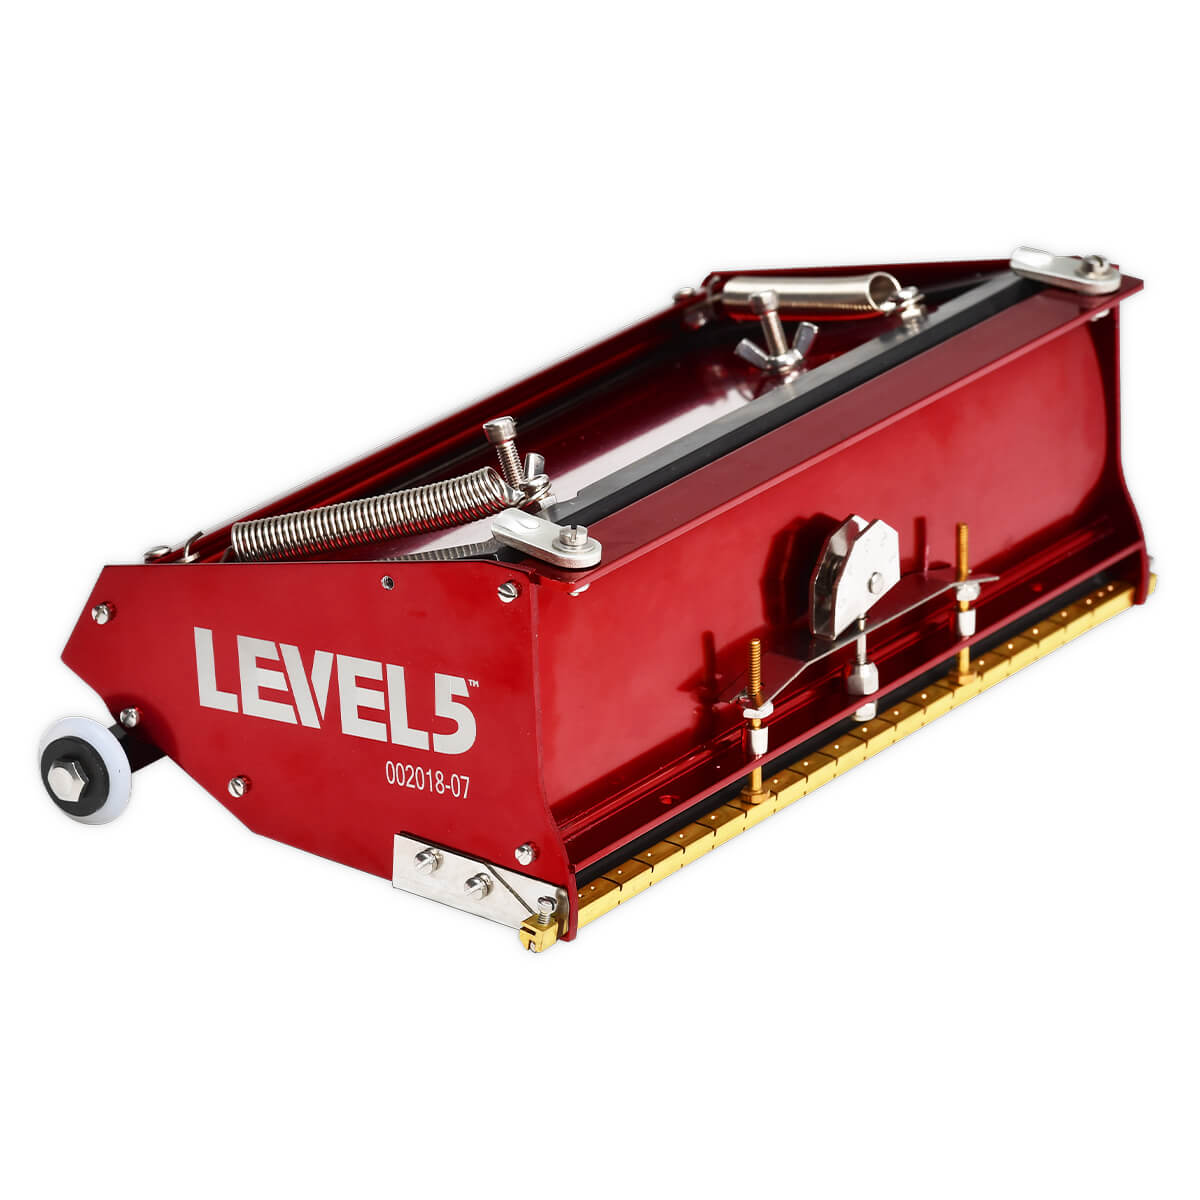 LEVEL5 10-Inch Drywall Flat Box | 4-765